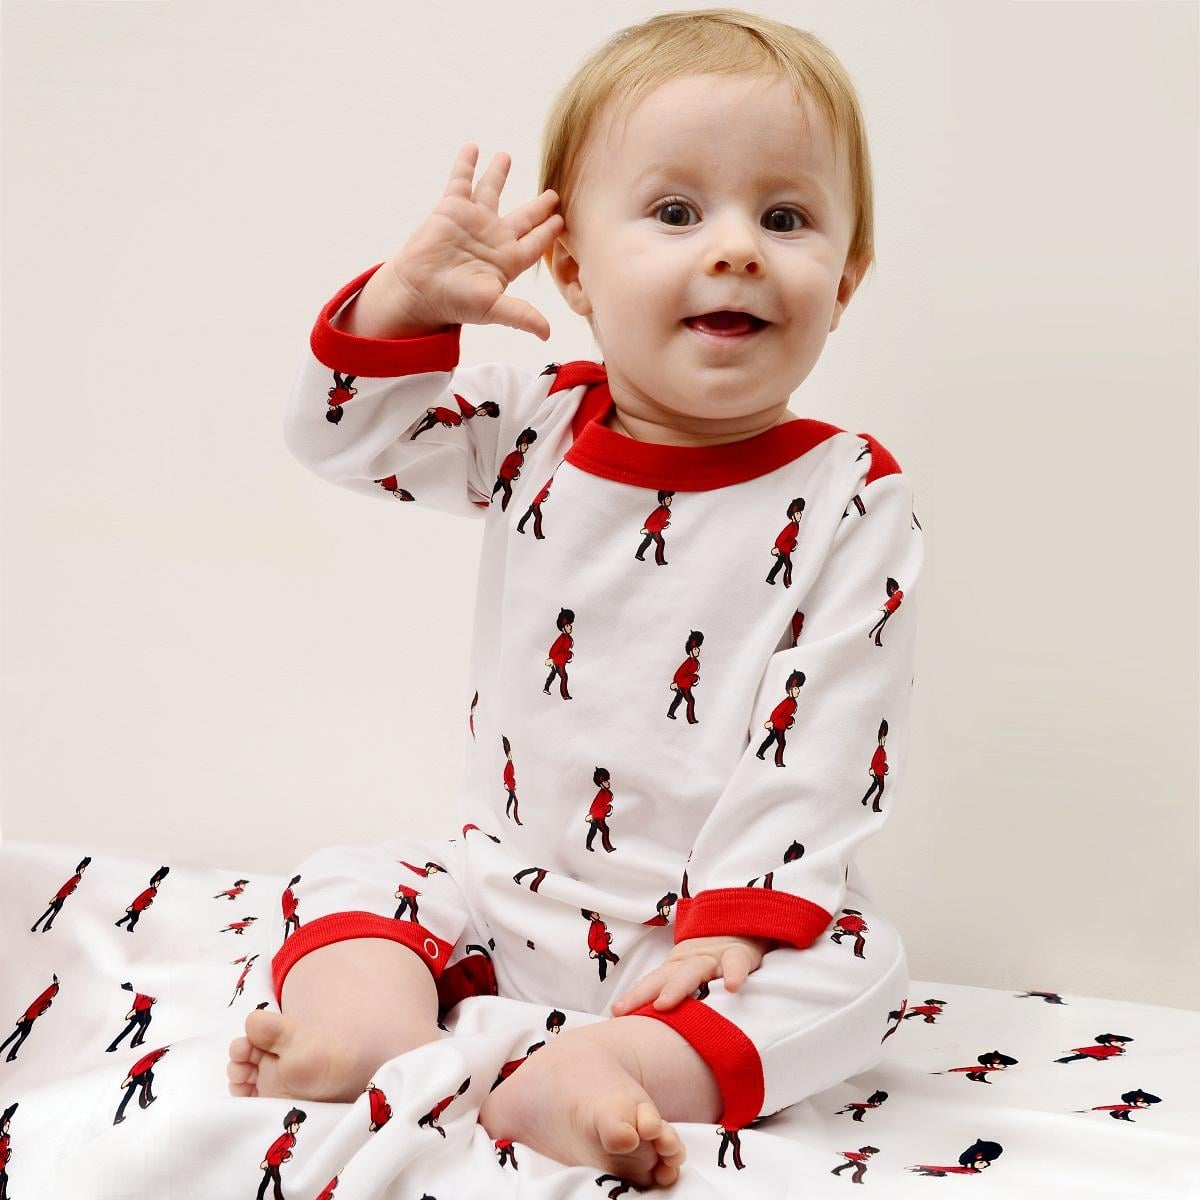 A royal baby could sleep in his or her very own Grenadier Guard Sleep Suit ($34) when dreaming of sitting on the royal throne!